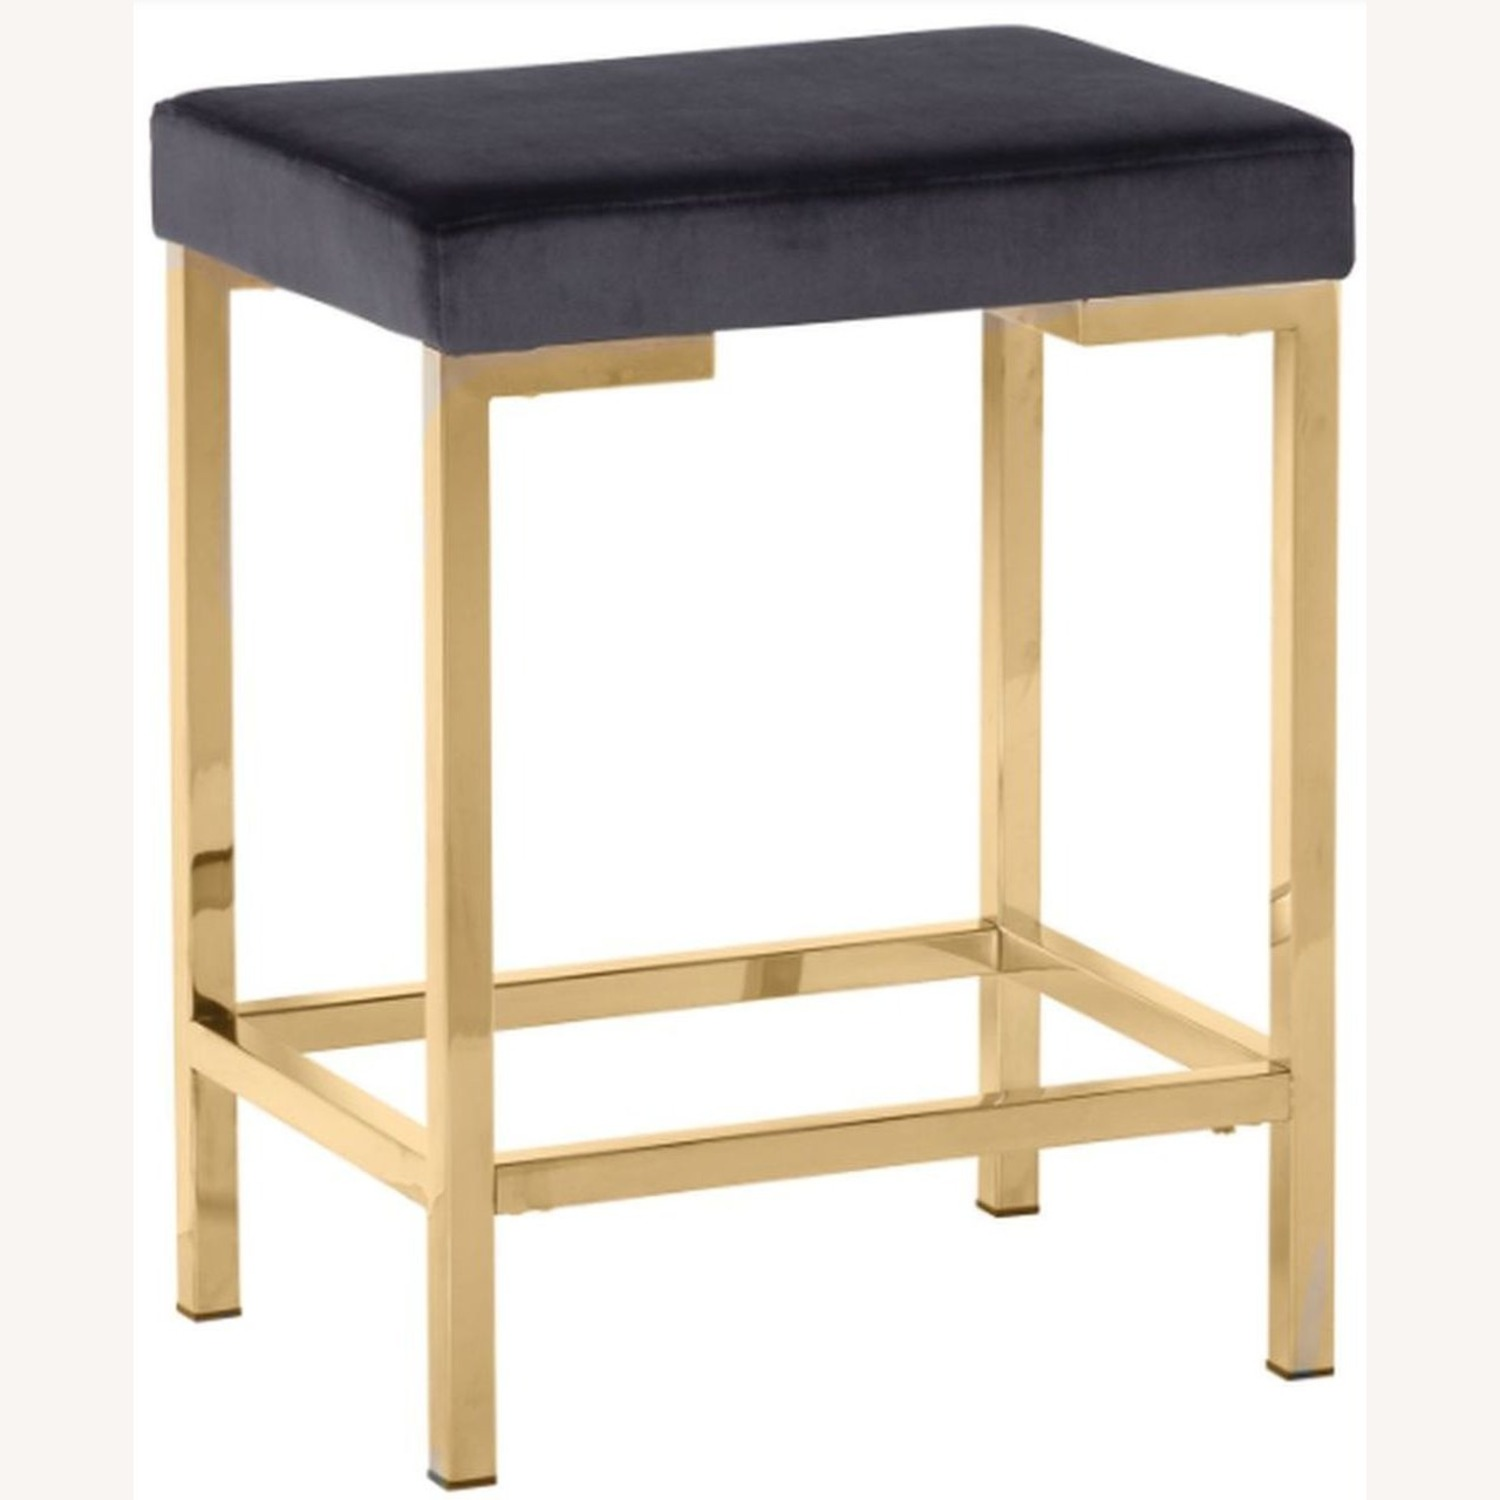 Minimalist Counter Height Stool In Charcoal Grey - image-0